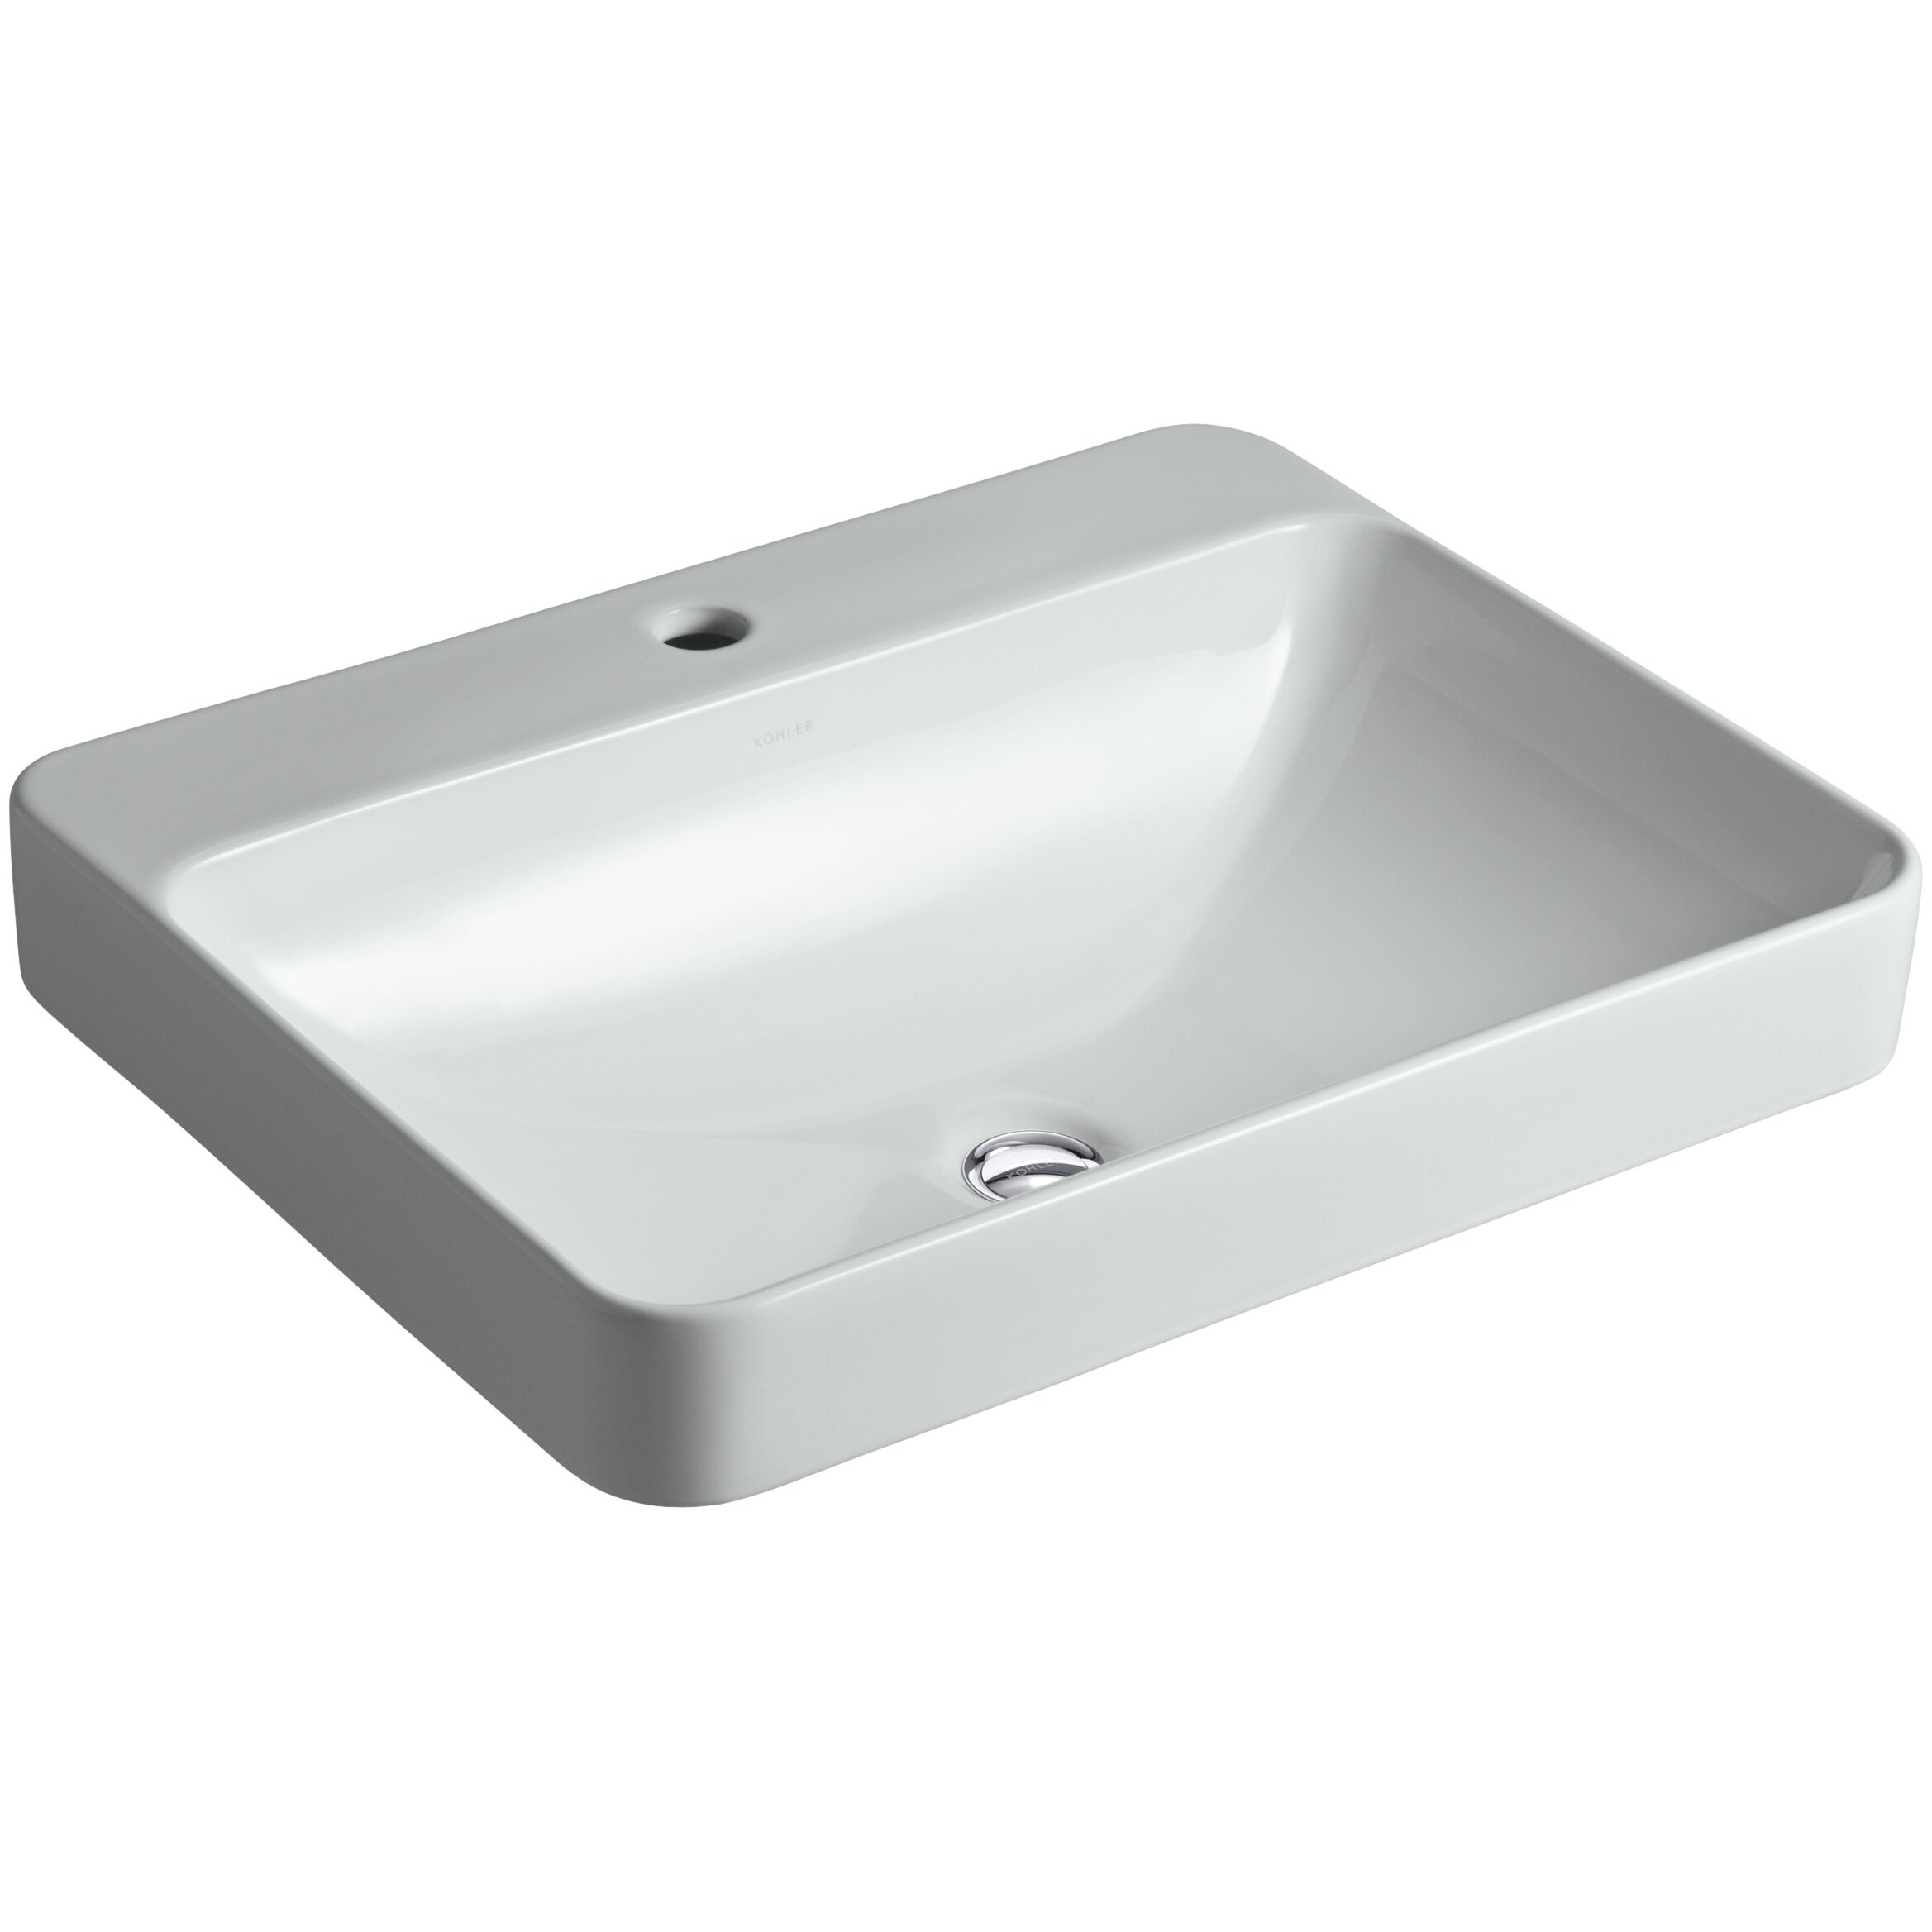 kohler square bathroom sink kohler vox rectangular vessel bathroom sink amp reviews 19034